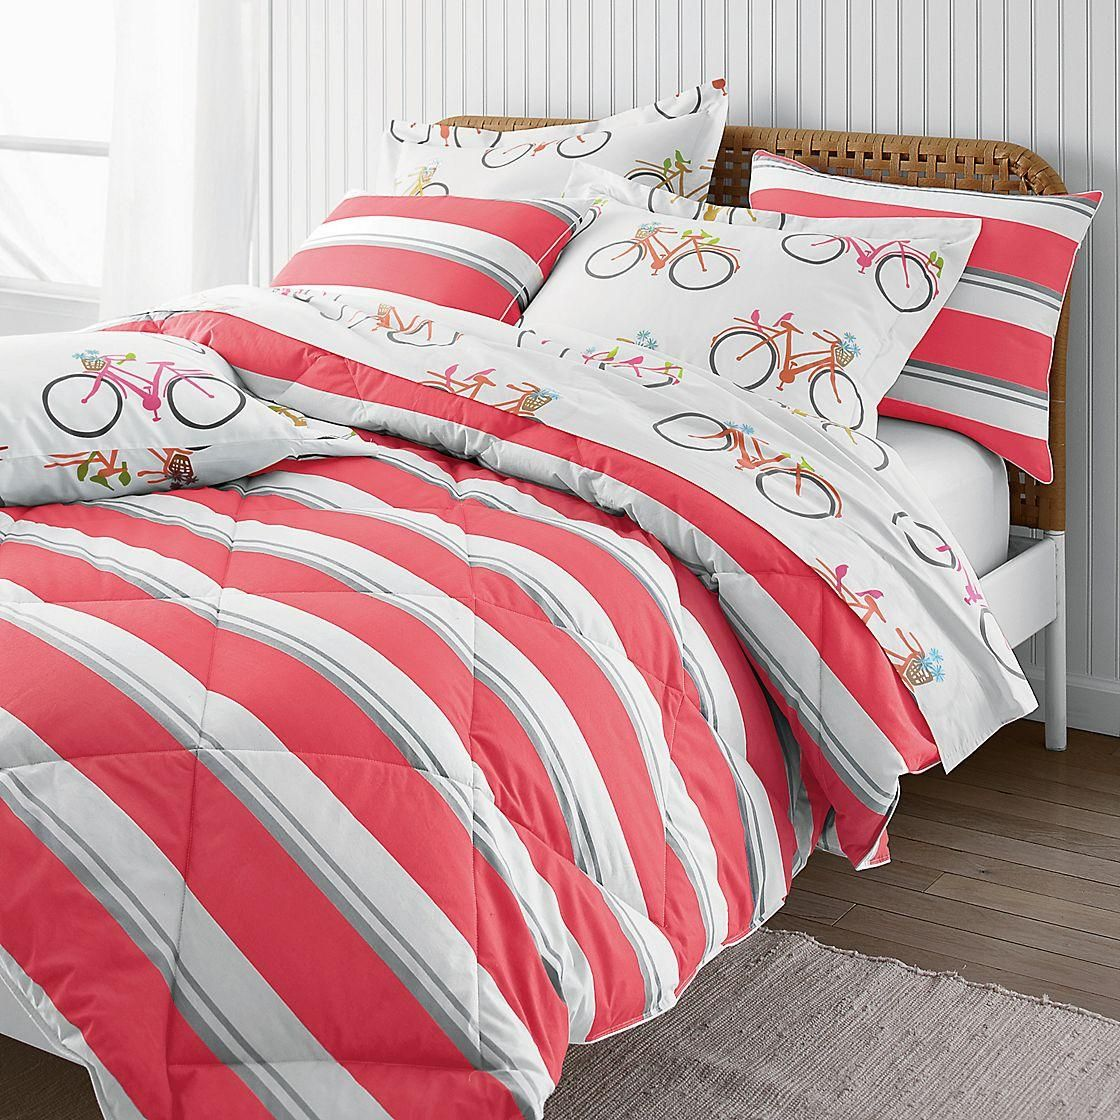 Ultracozy striped comforter filled with lofty, white 500